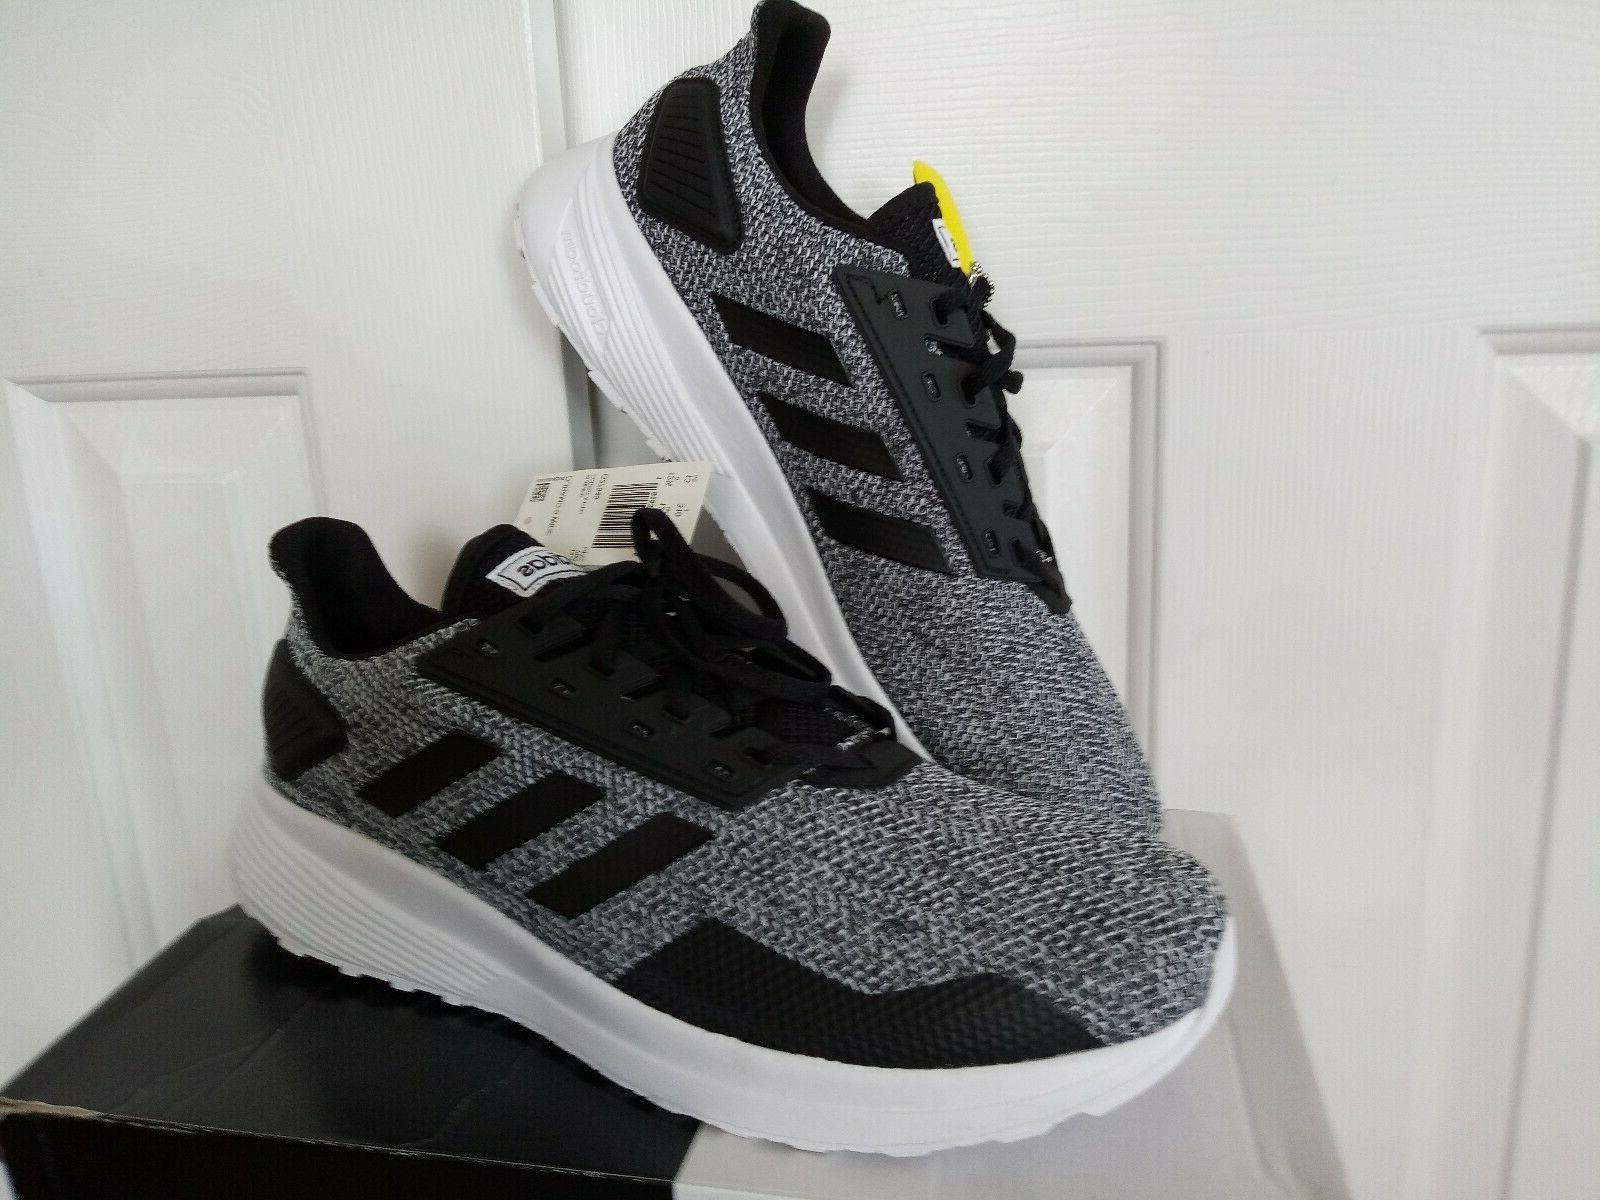 adidas Duramo W Knit Running Course Sneakers